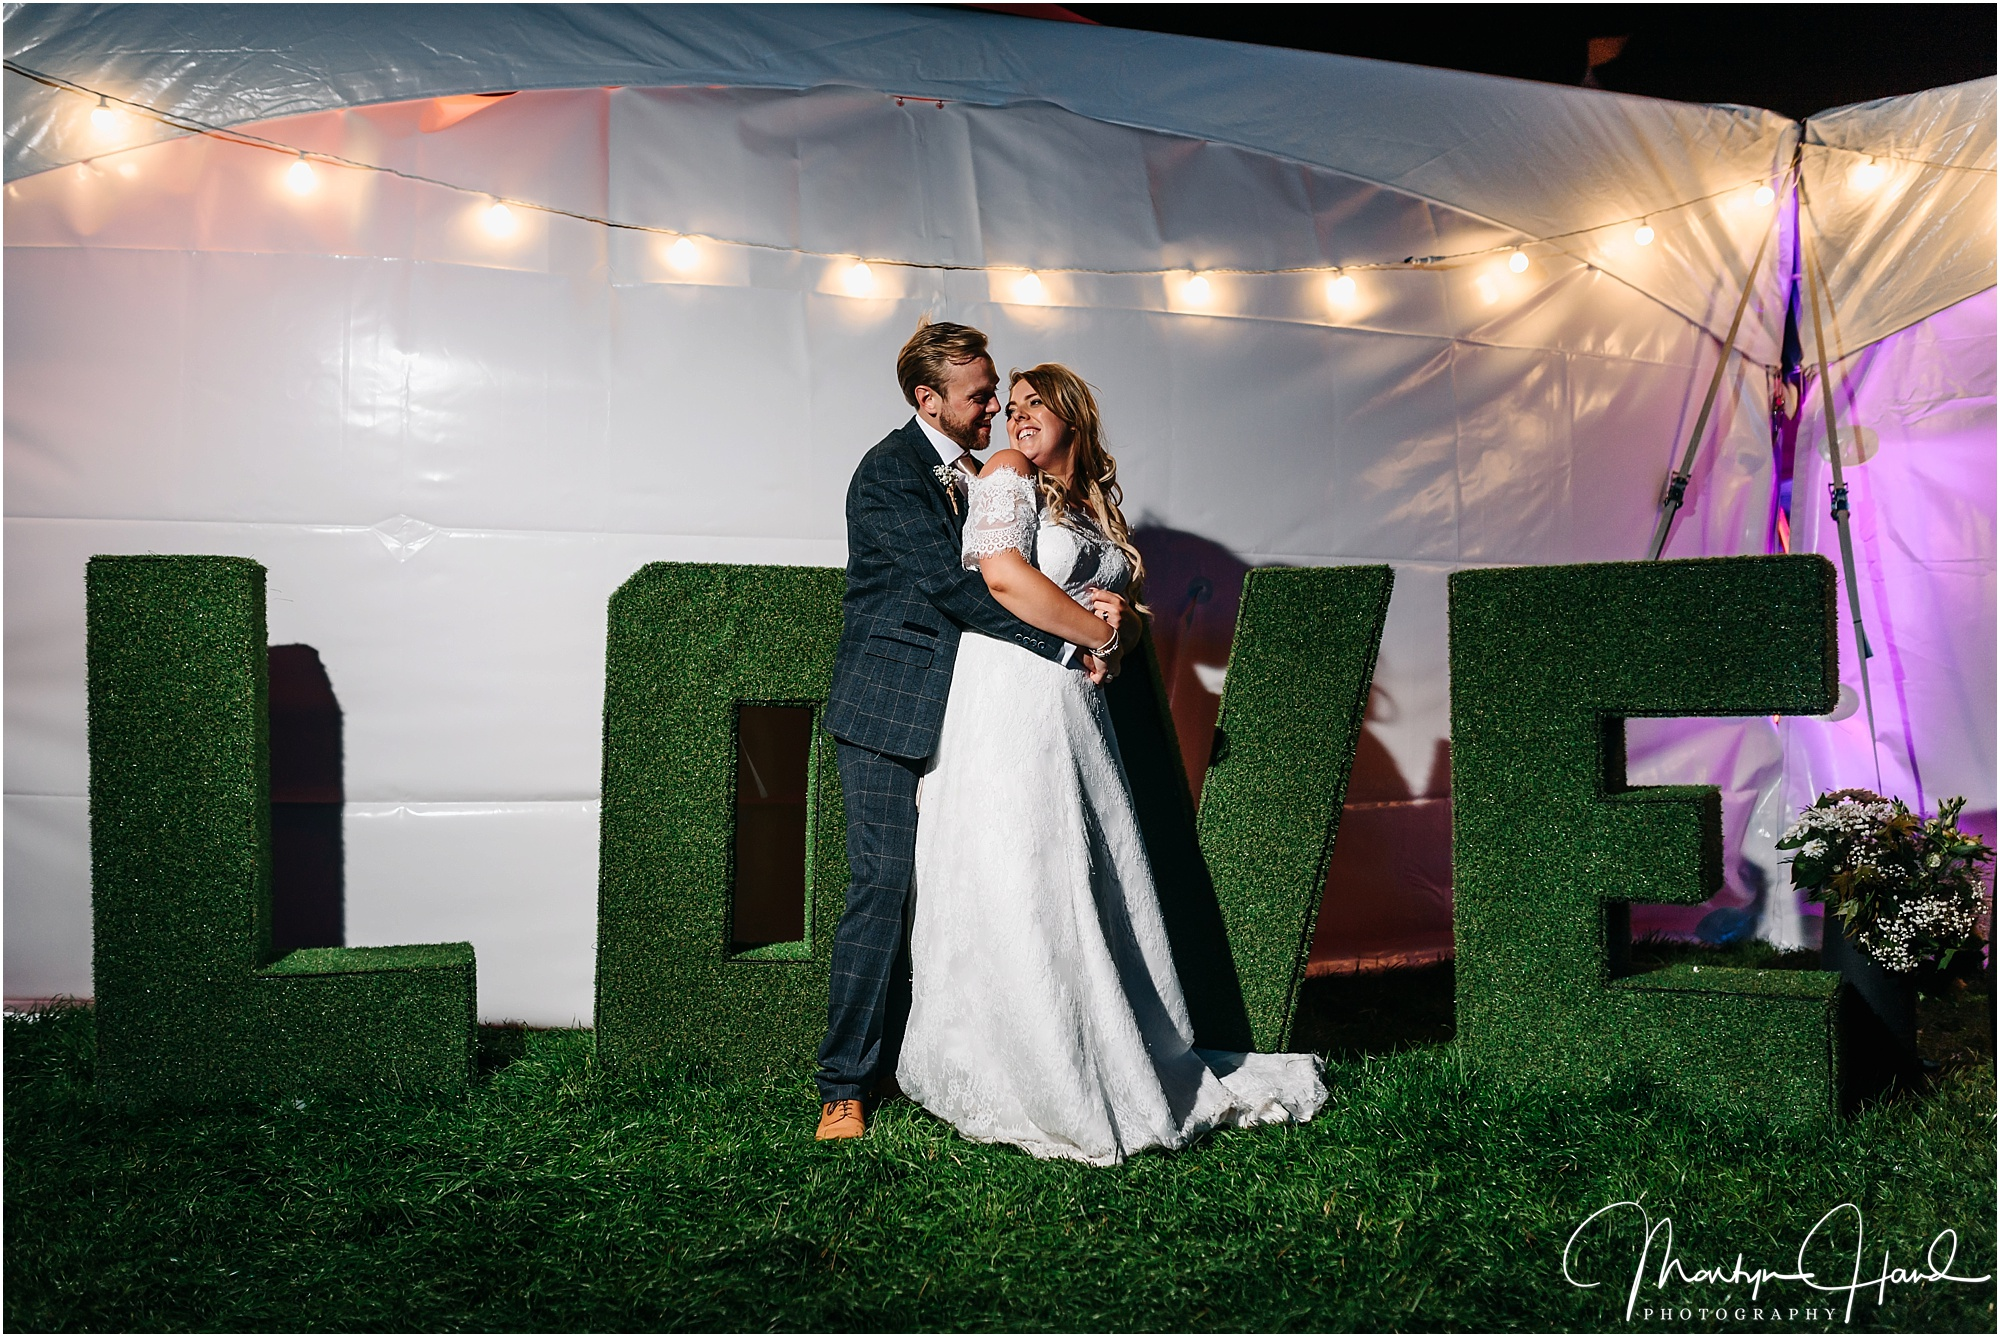 Laura & Mark Wedding Highlights-79.jpg